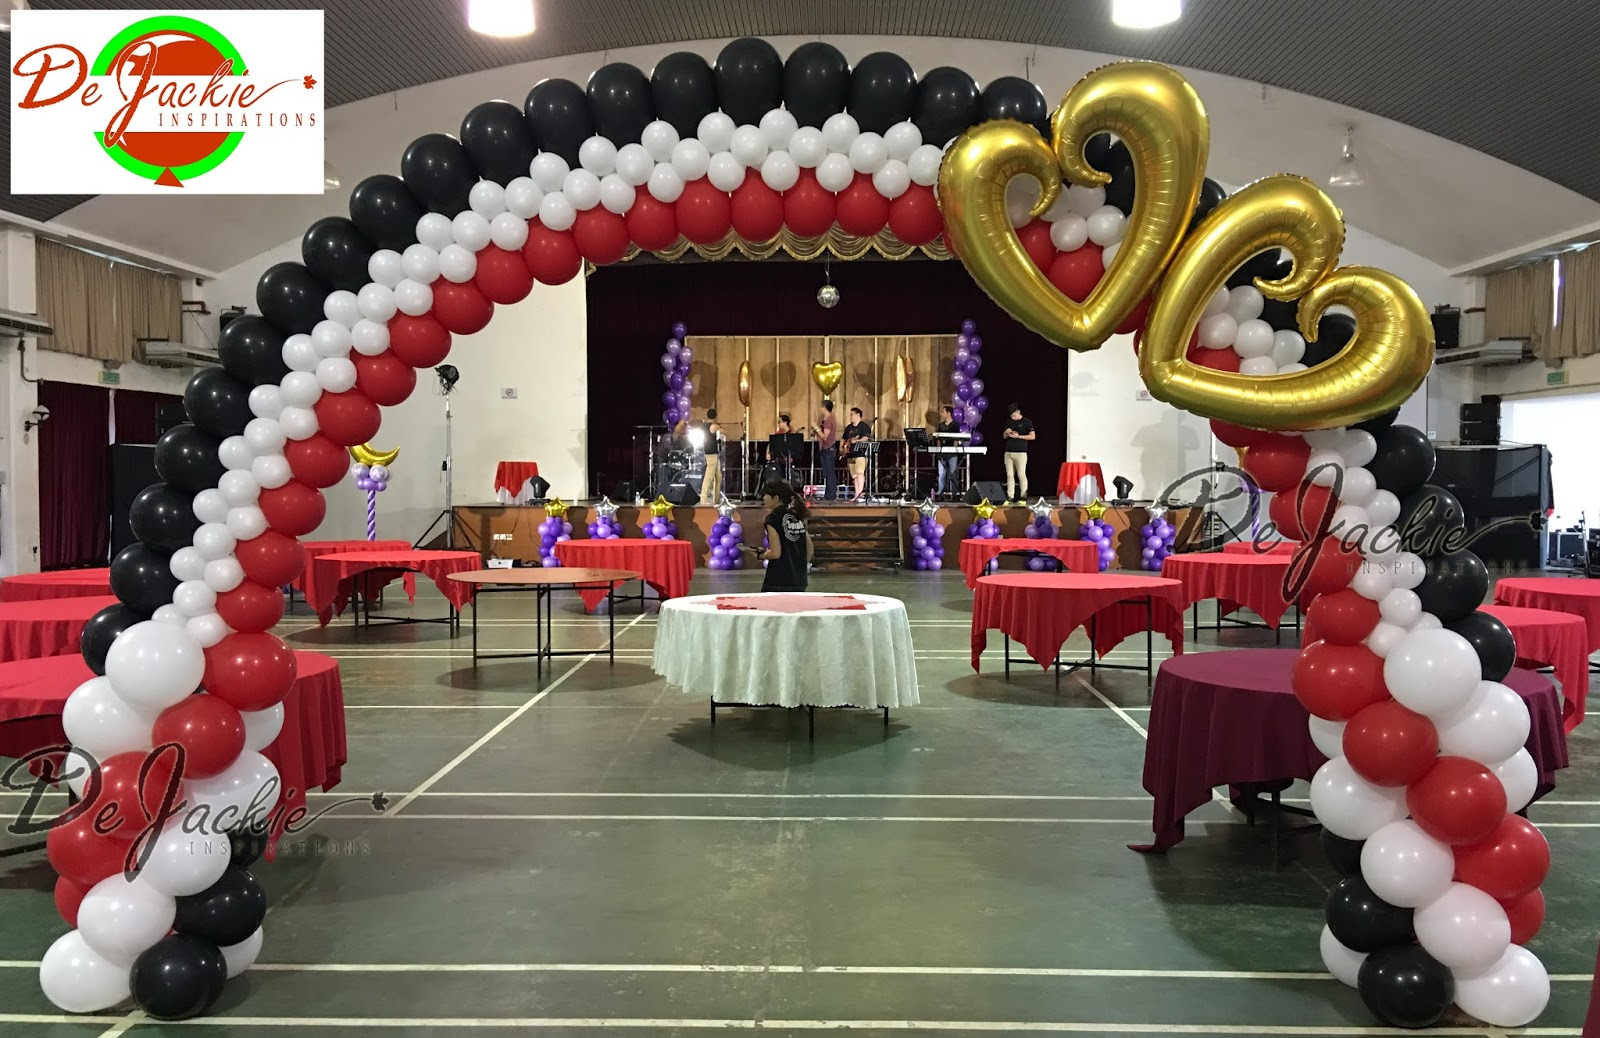 Simple Wedding Balloon Arch Balloon decorations for